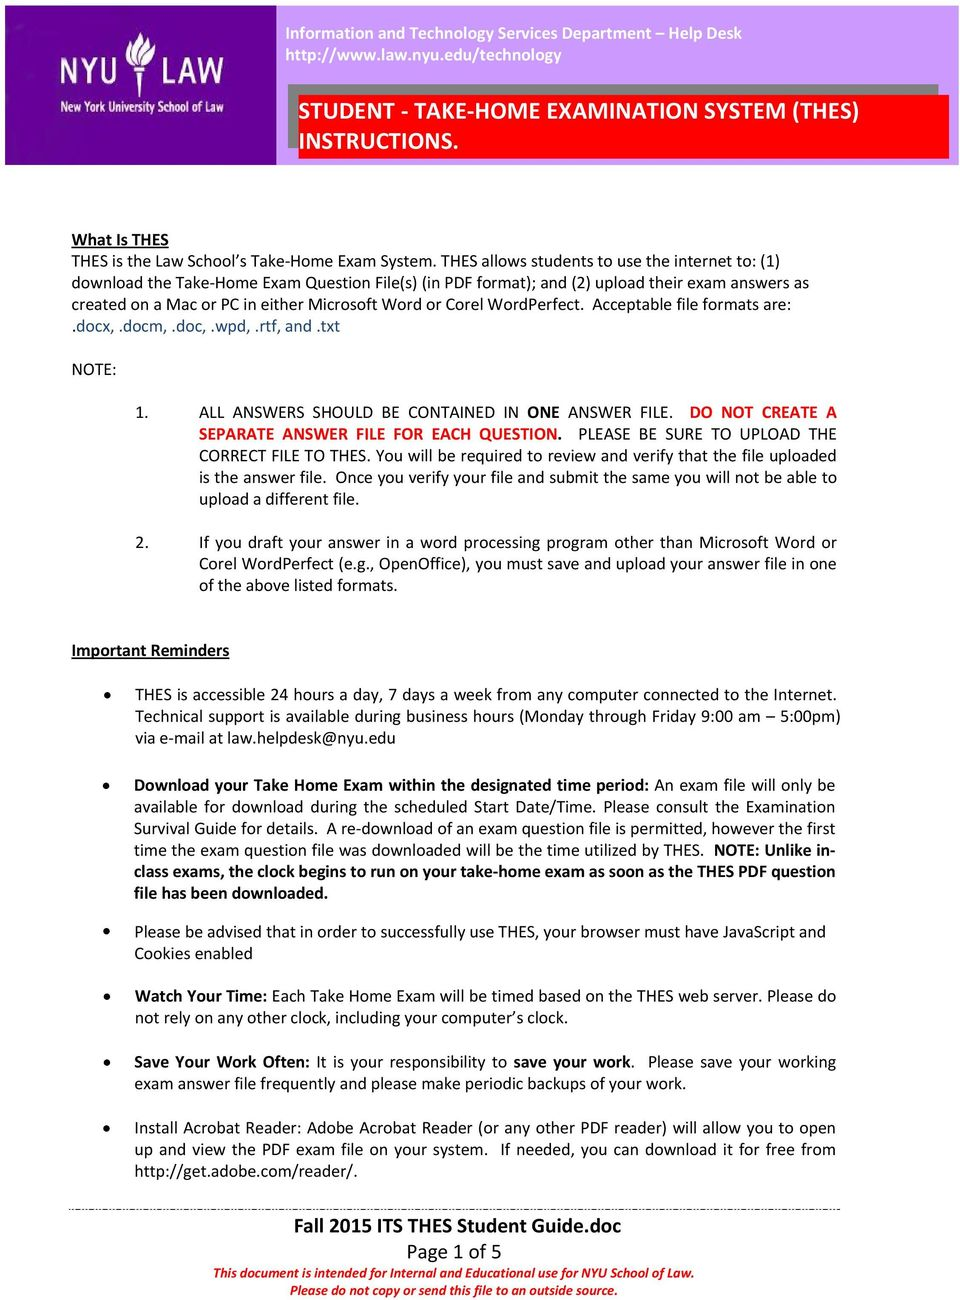 STUDENT TAKE HOME EXAMINATION SYSTEM (THES) INSTRUCTIONS  - PDF